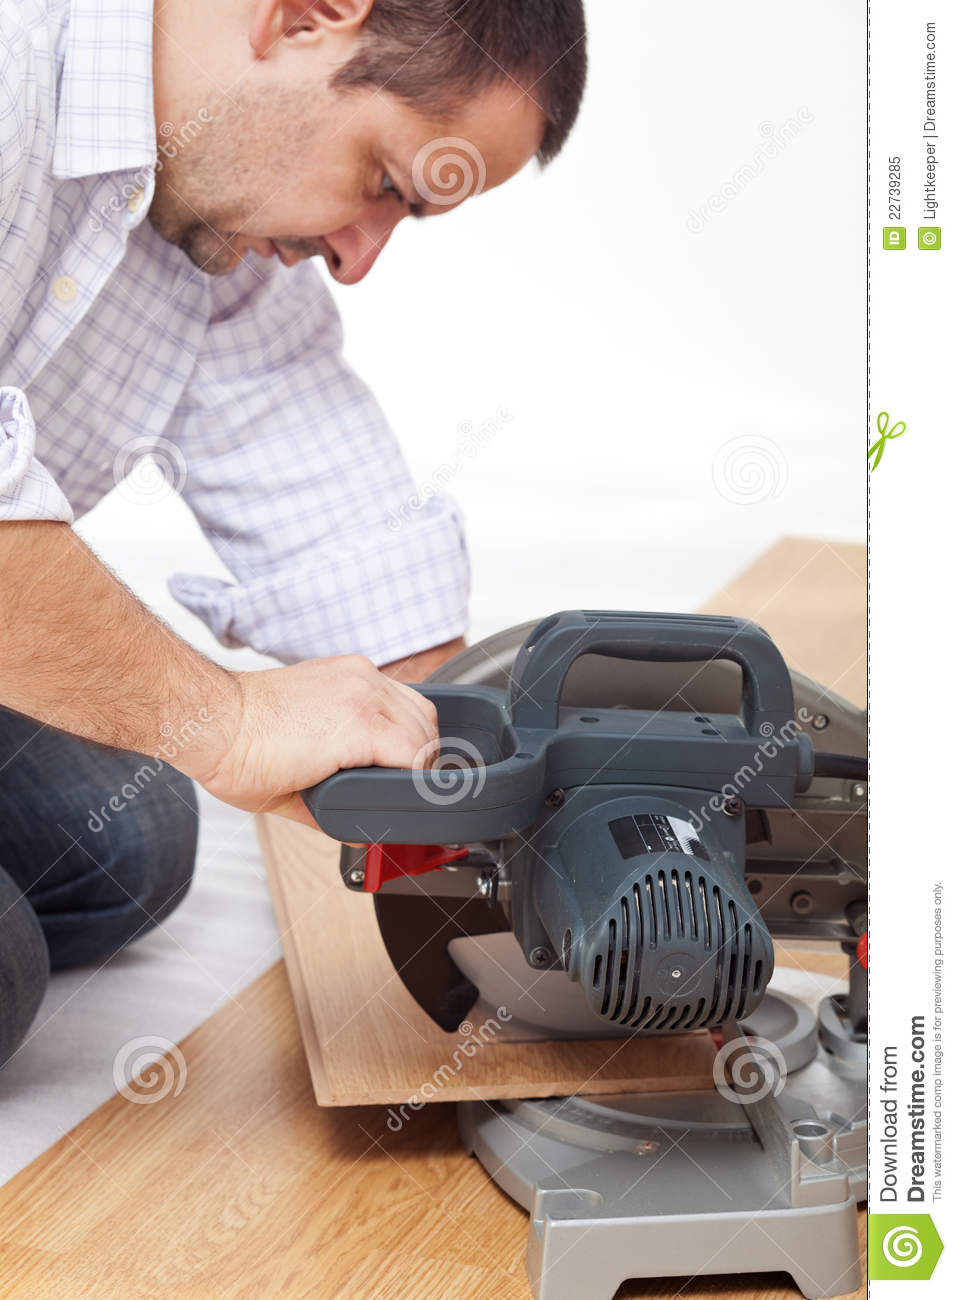 Cutting Laminate Flooring using the angle finder tool to cut angles when installing laminate flooring Cutting The Laminate Flooring Planks